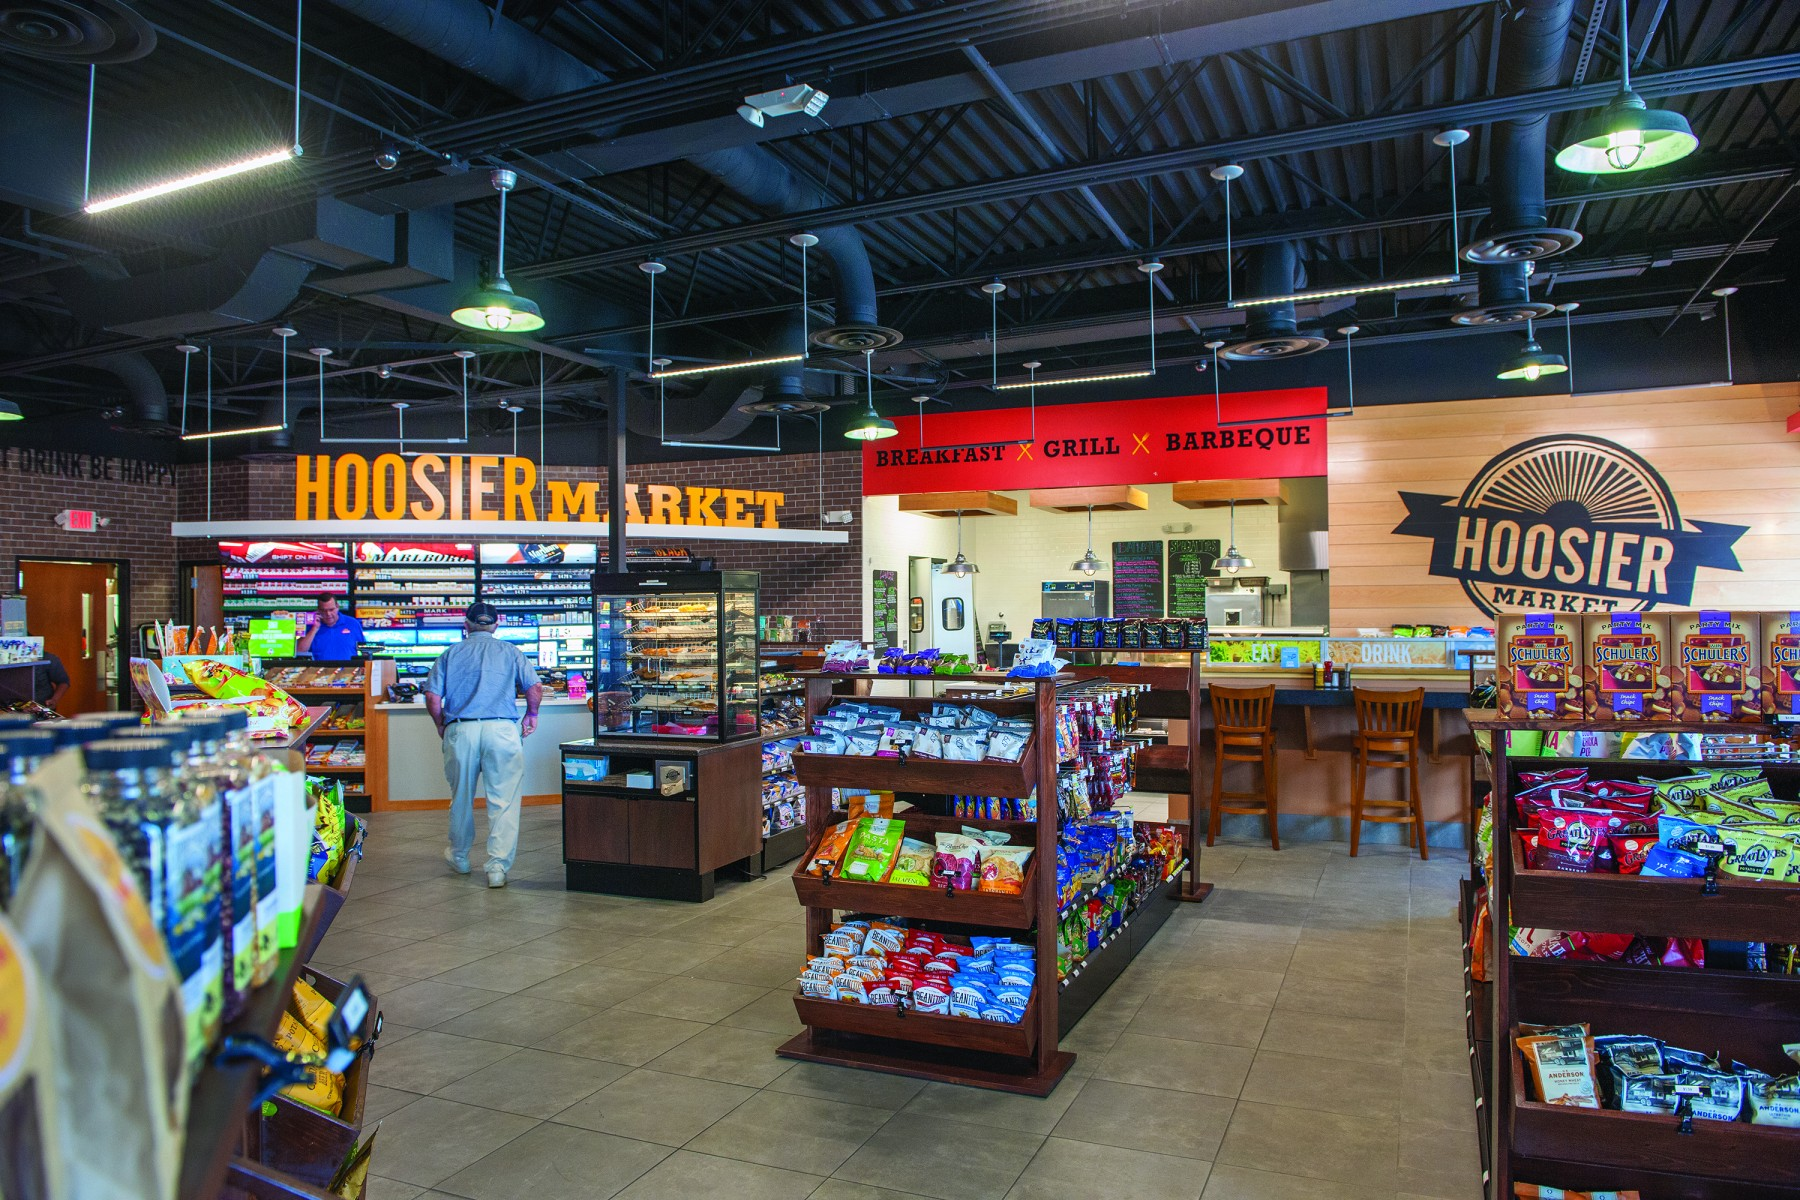 Interior of Hoosier Market, a Marathon-brand station